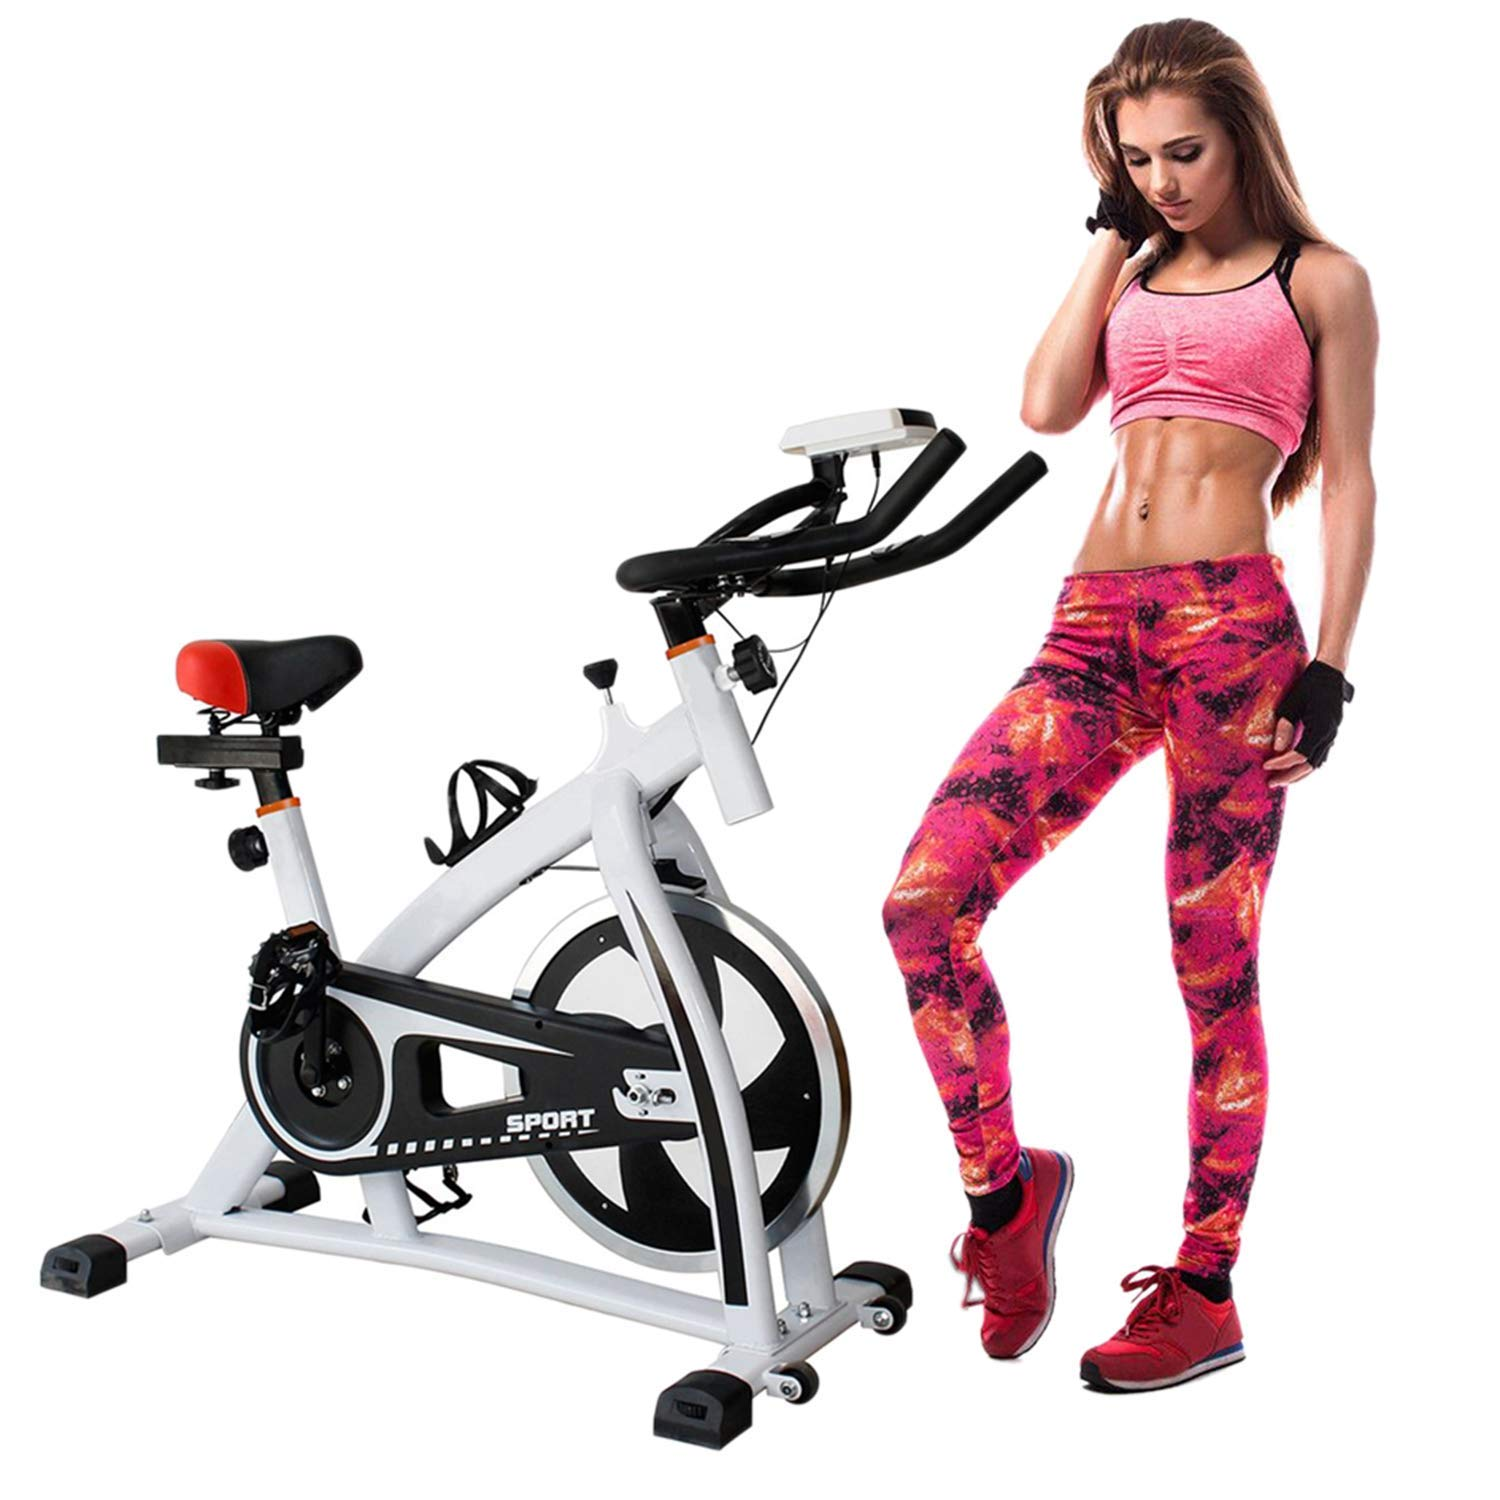 Meganolga Indoor Cycling Bike Indoor Cycle Stationary Exercise Bike Trainer Fitness Stationary Cycling Bicycle Exercise & Fitness Exercise Machines White